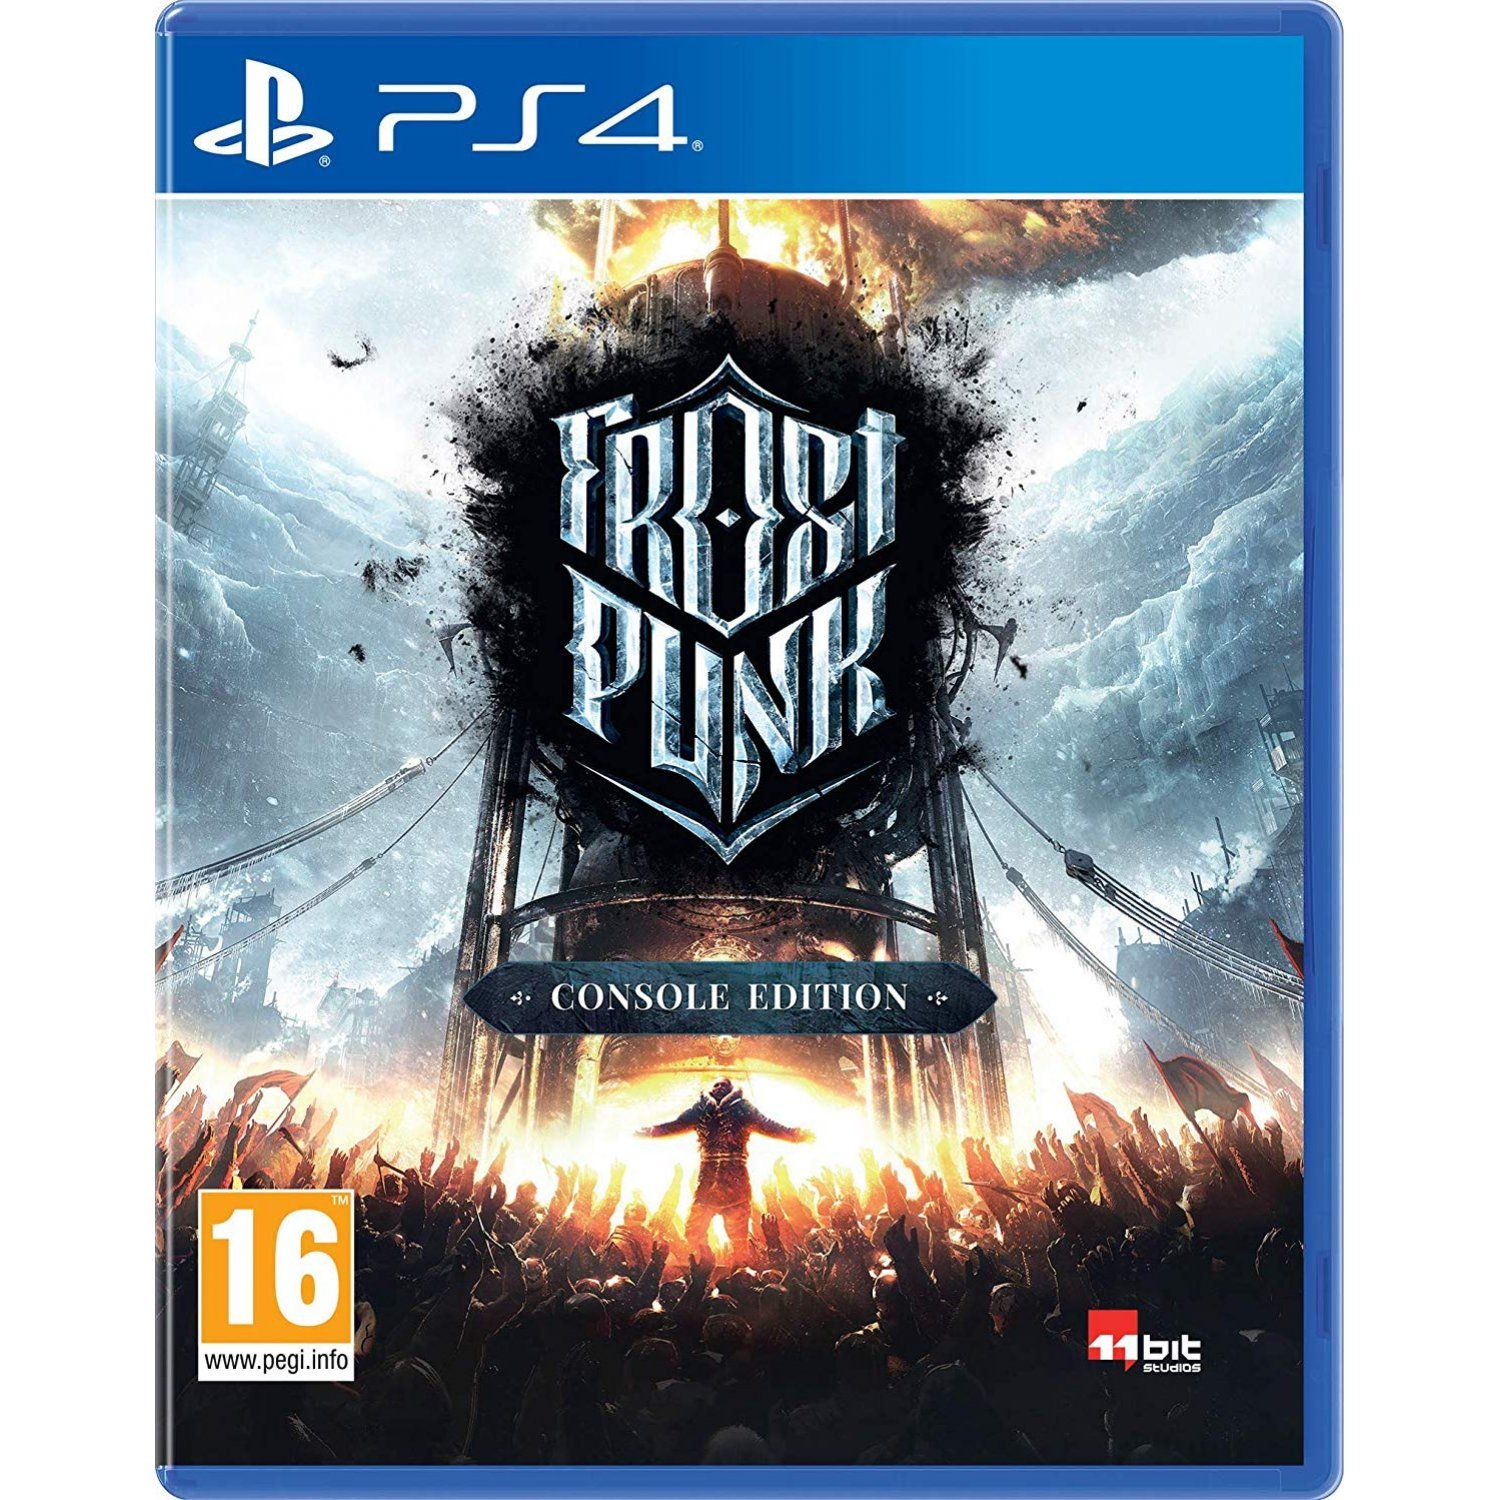 Frostpunk [Console Edition] Xbox one, Cool things to buy